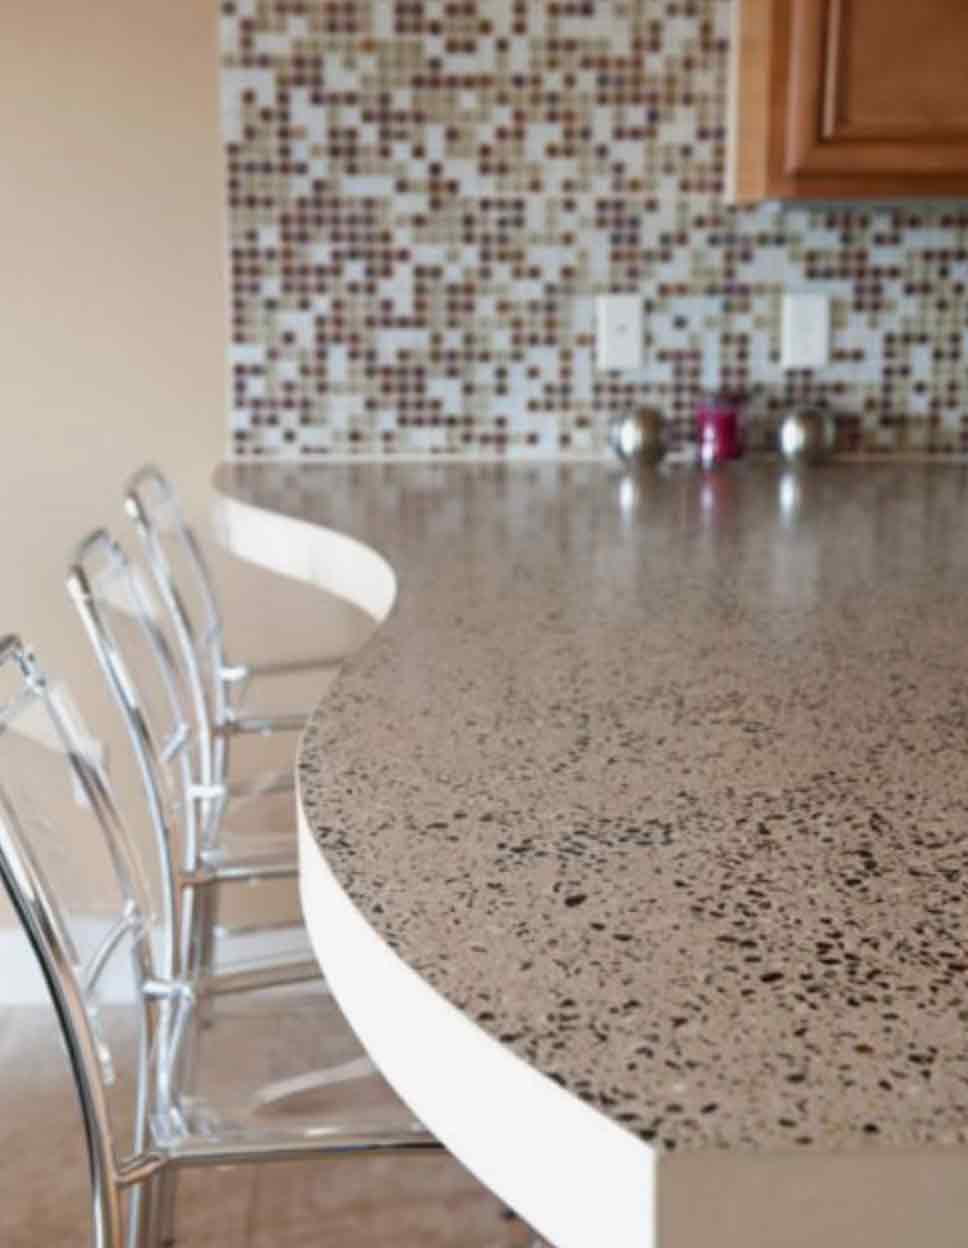 Image of a tough kitchen counter used in a blog by forthefloorandmore.com